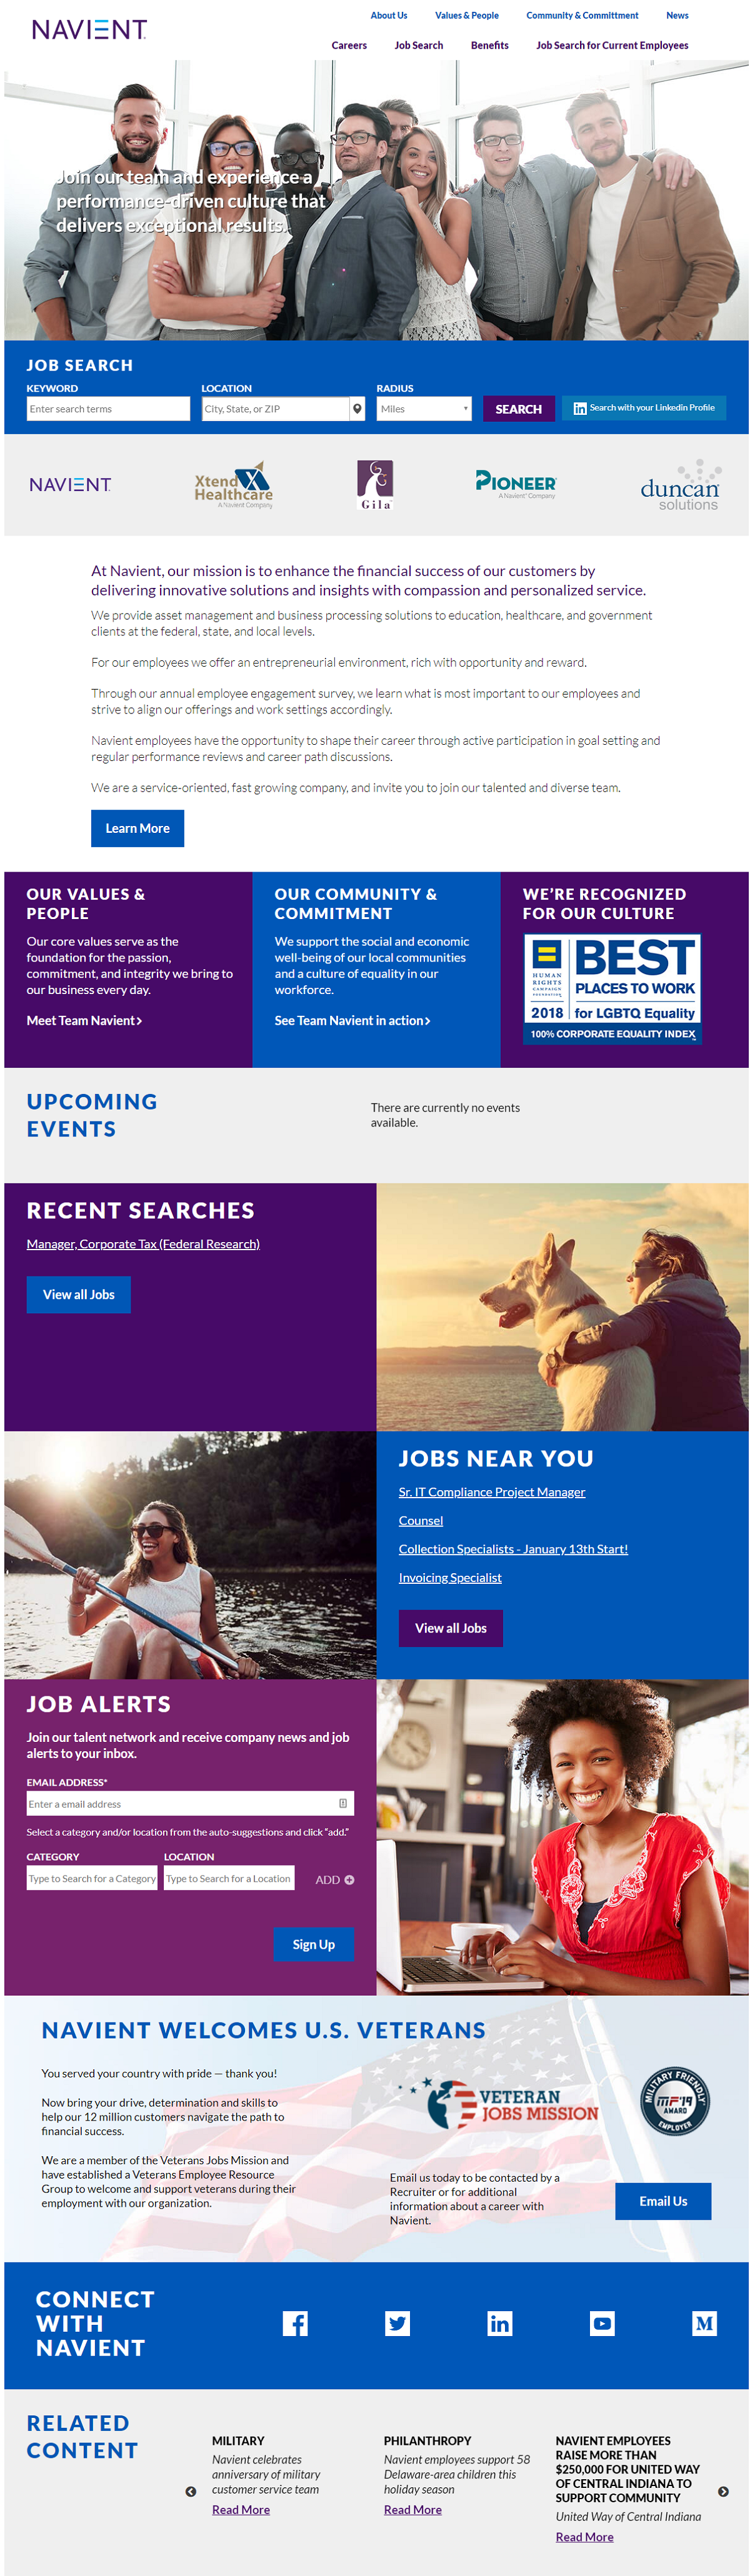 Navient company career page